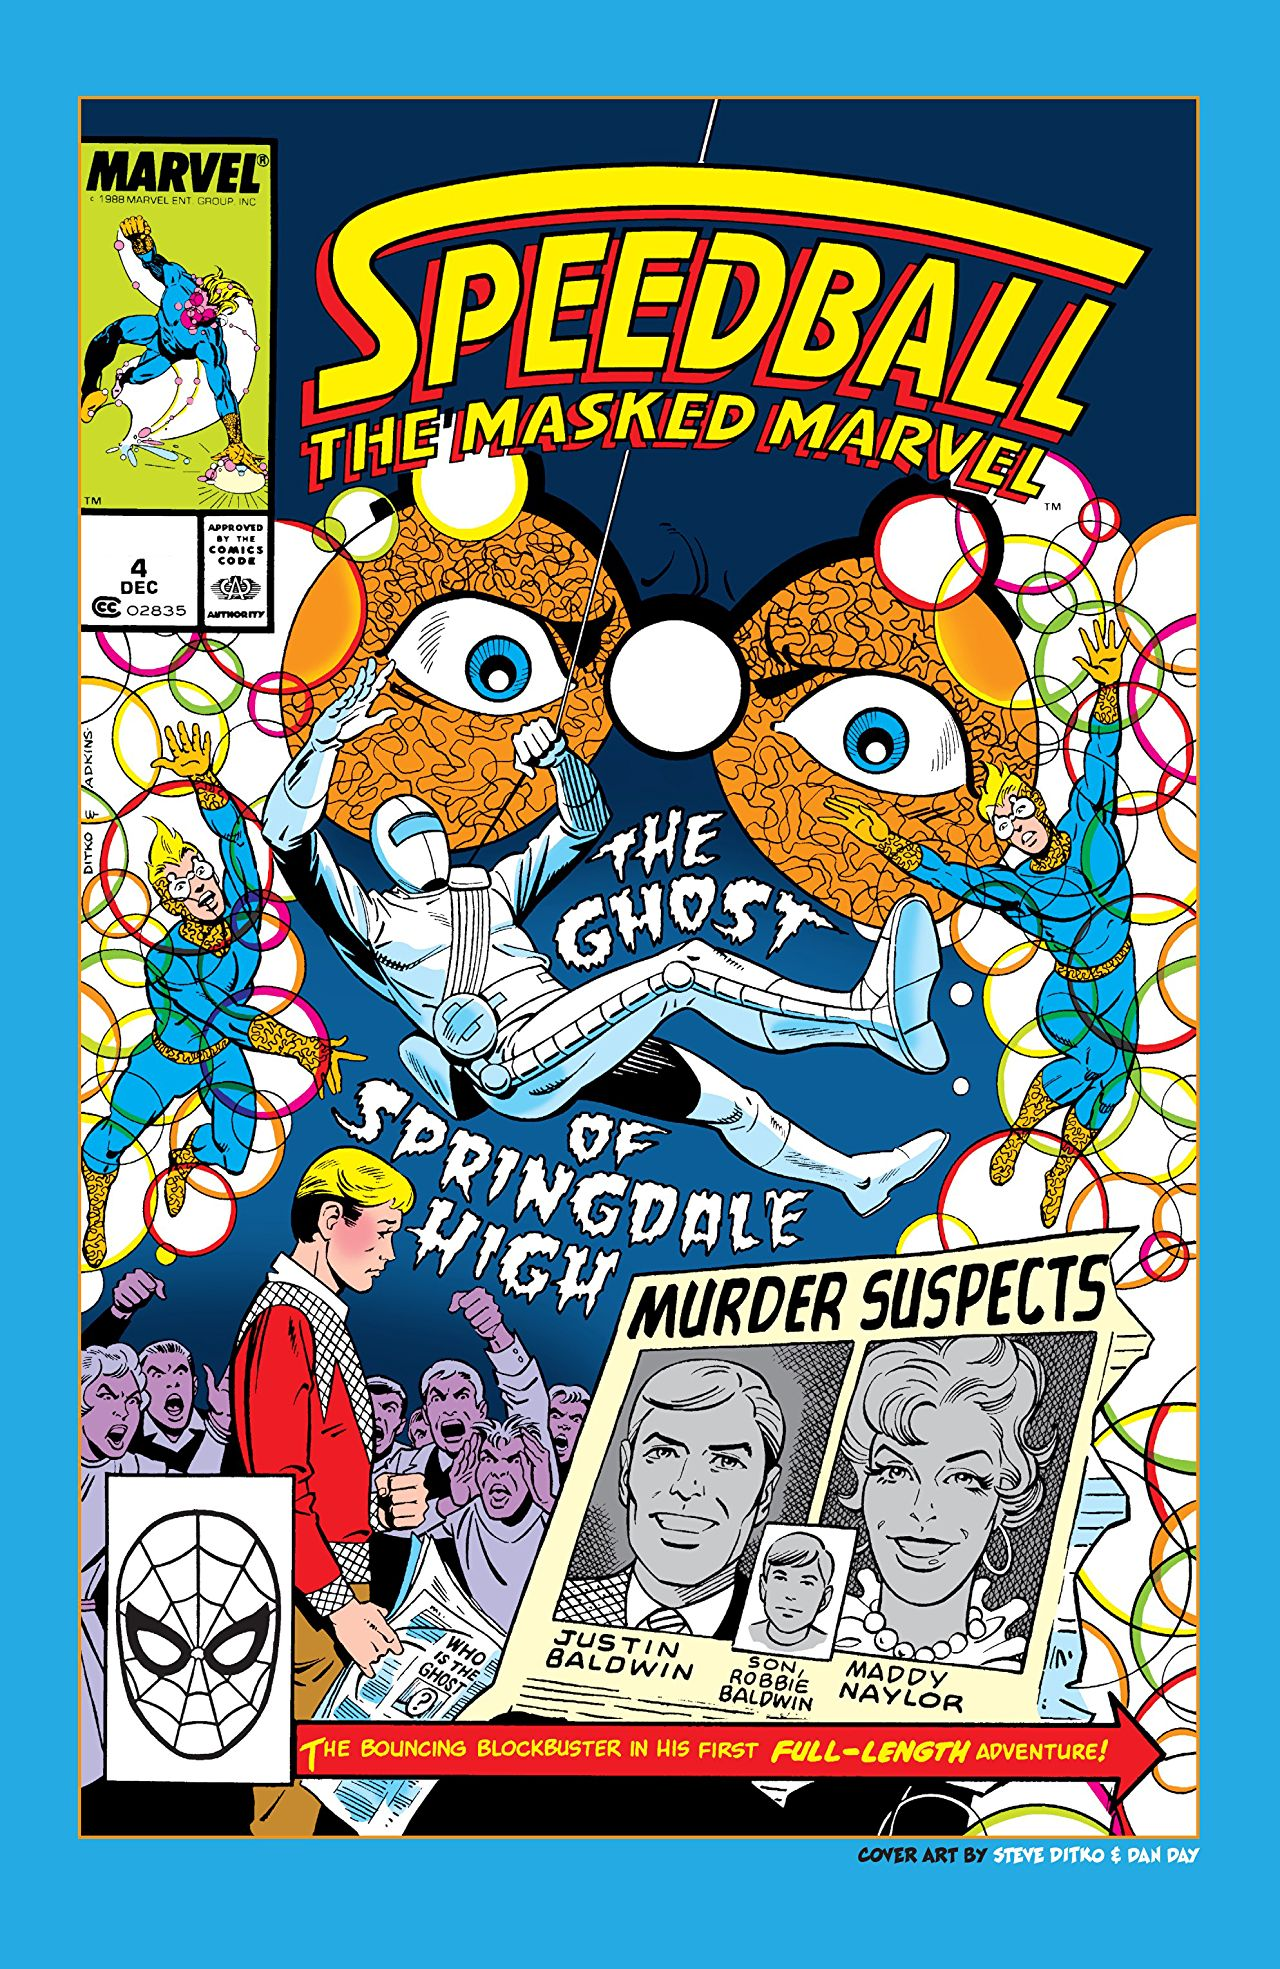 3 Reasons why 'Speedball: The Masked Marvel' will get a Marvel Studios movie